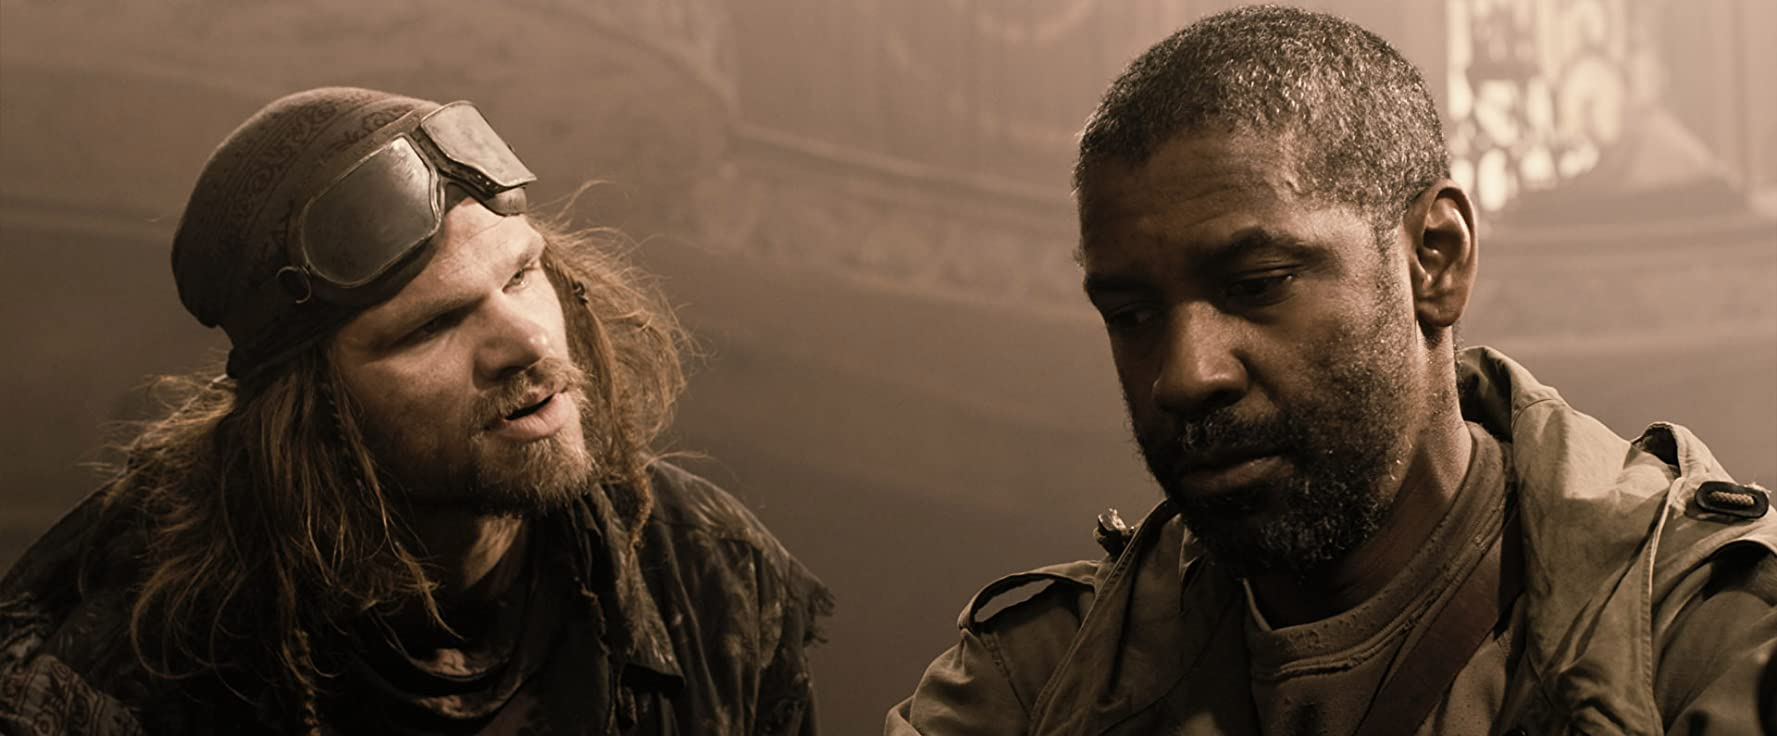 Denzel Washington and Evan Jones in The Book of Eli (2010)